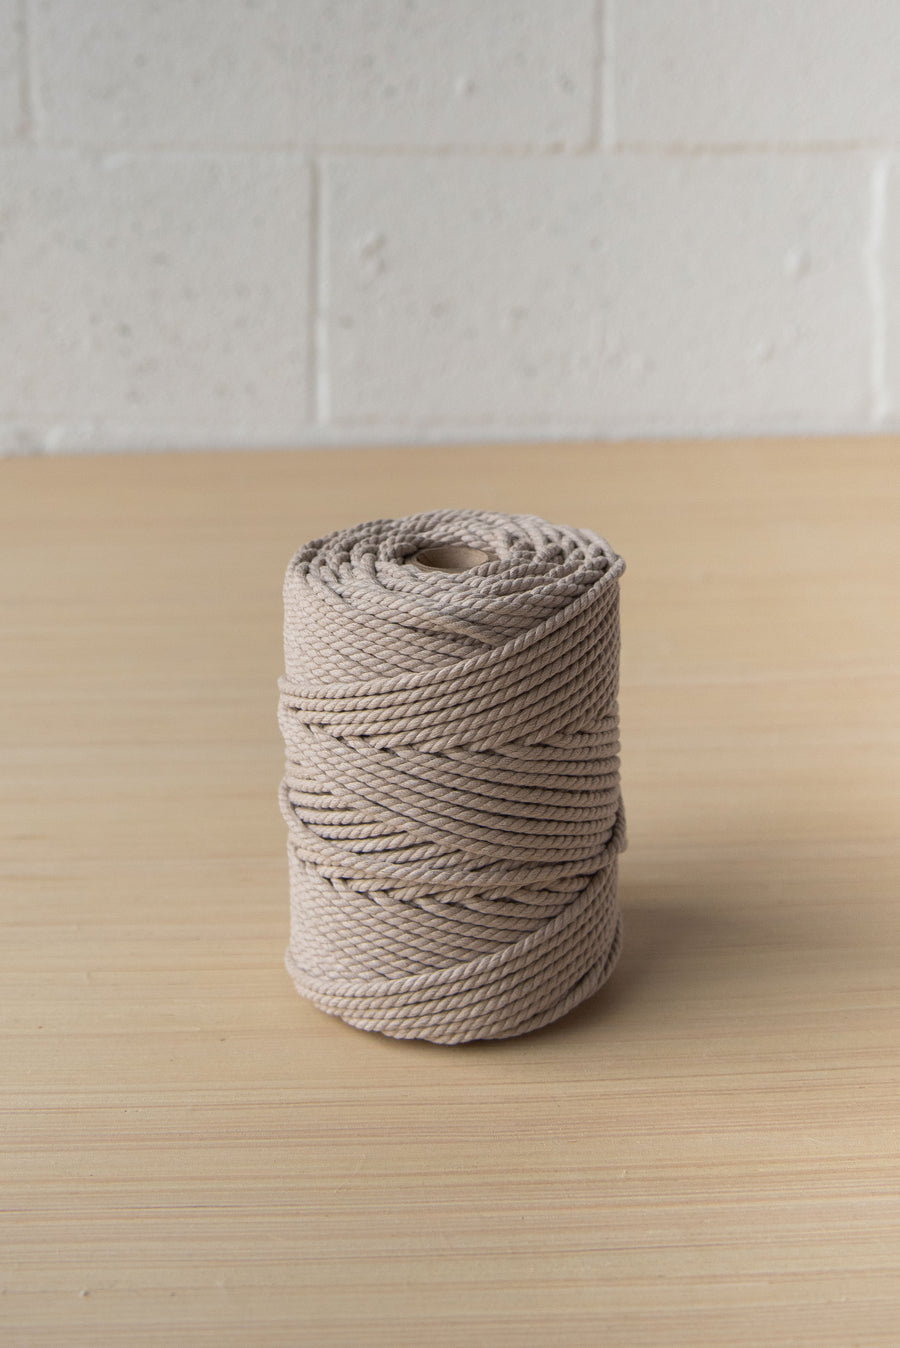 COTTON ROPE ZERO WASTE 3 MM - 3 PLY - BEIGE COLOR